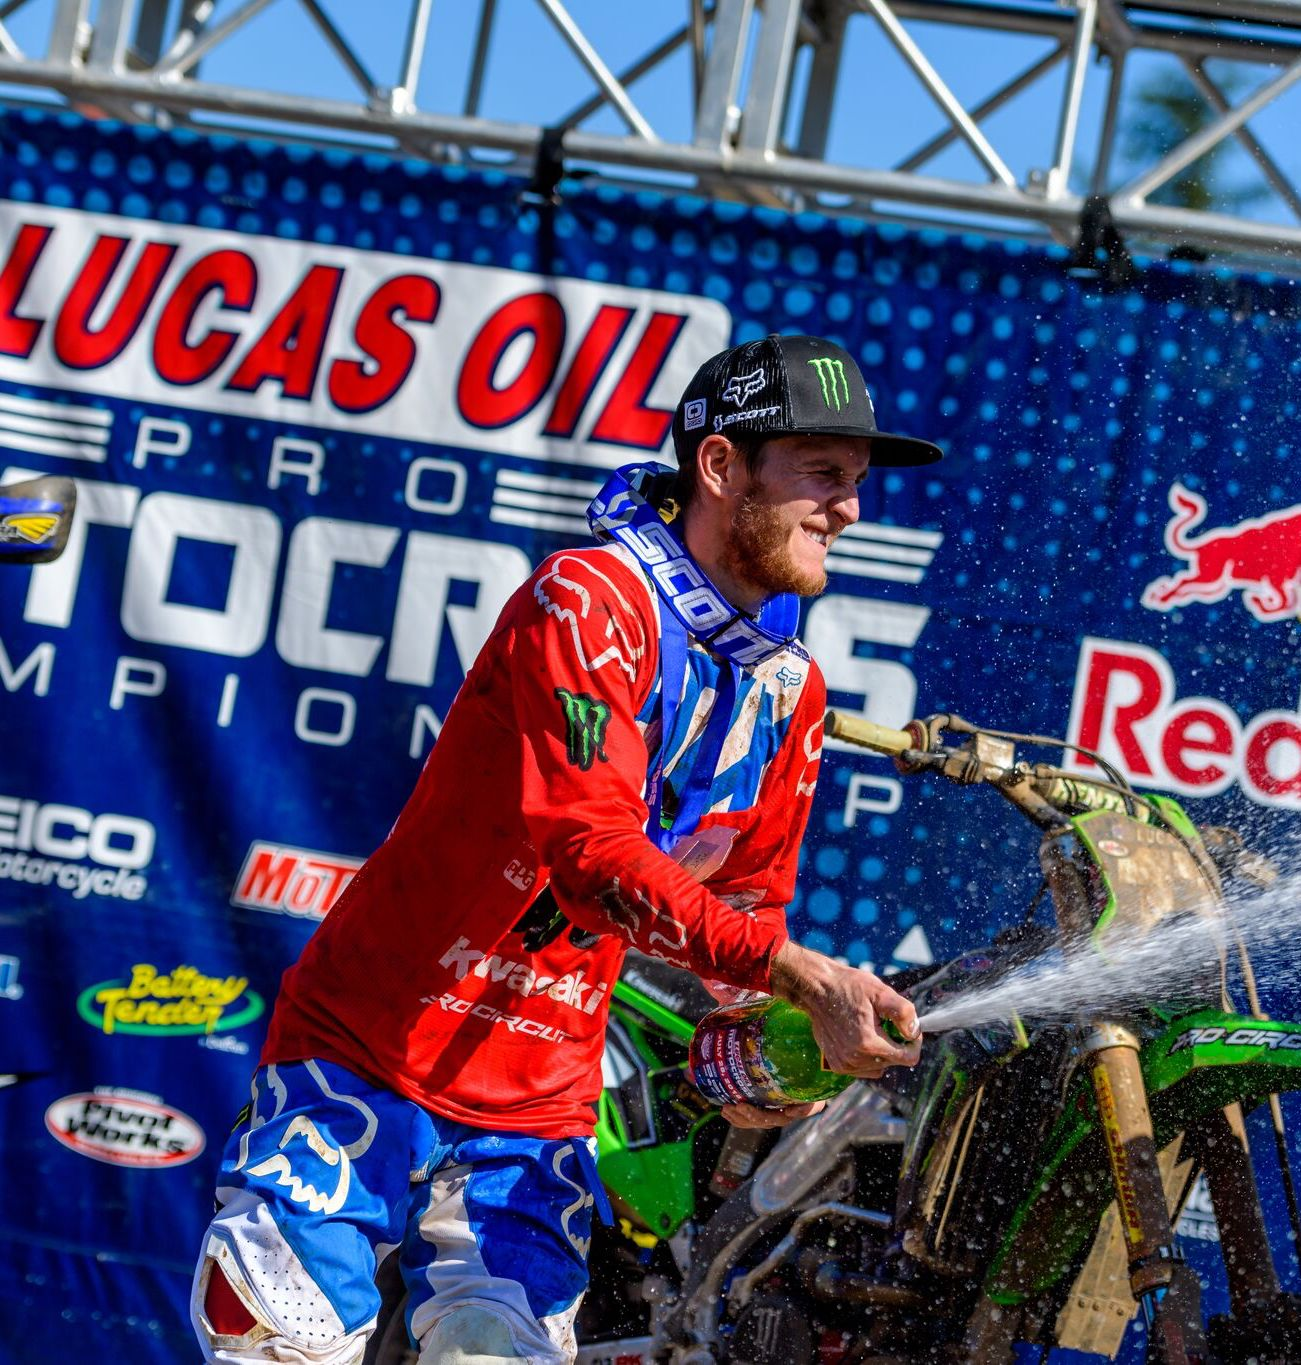 Savatgy Claims First Moto Win and Overall Podium of the Season